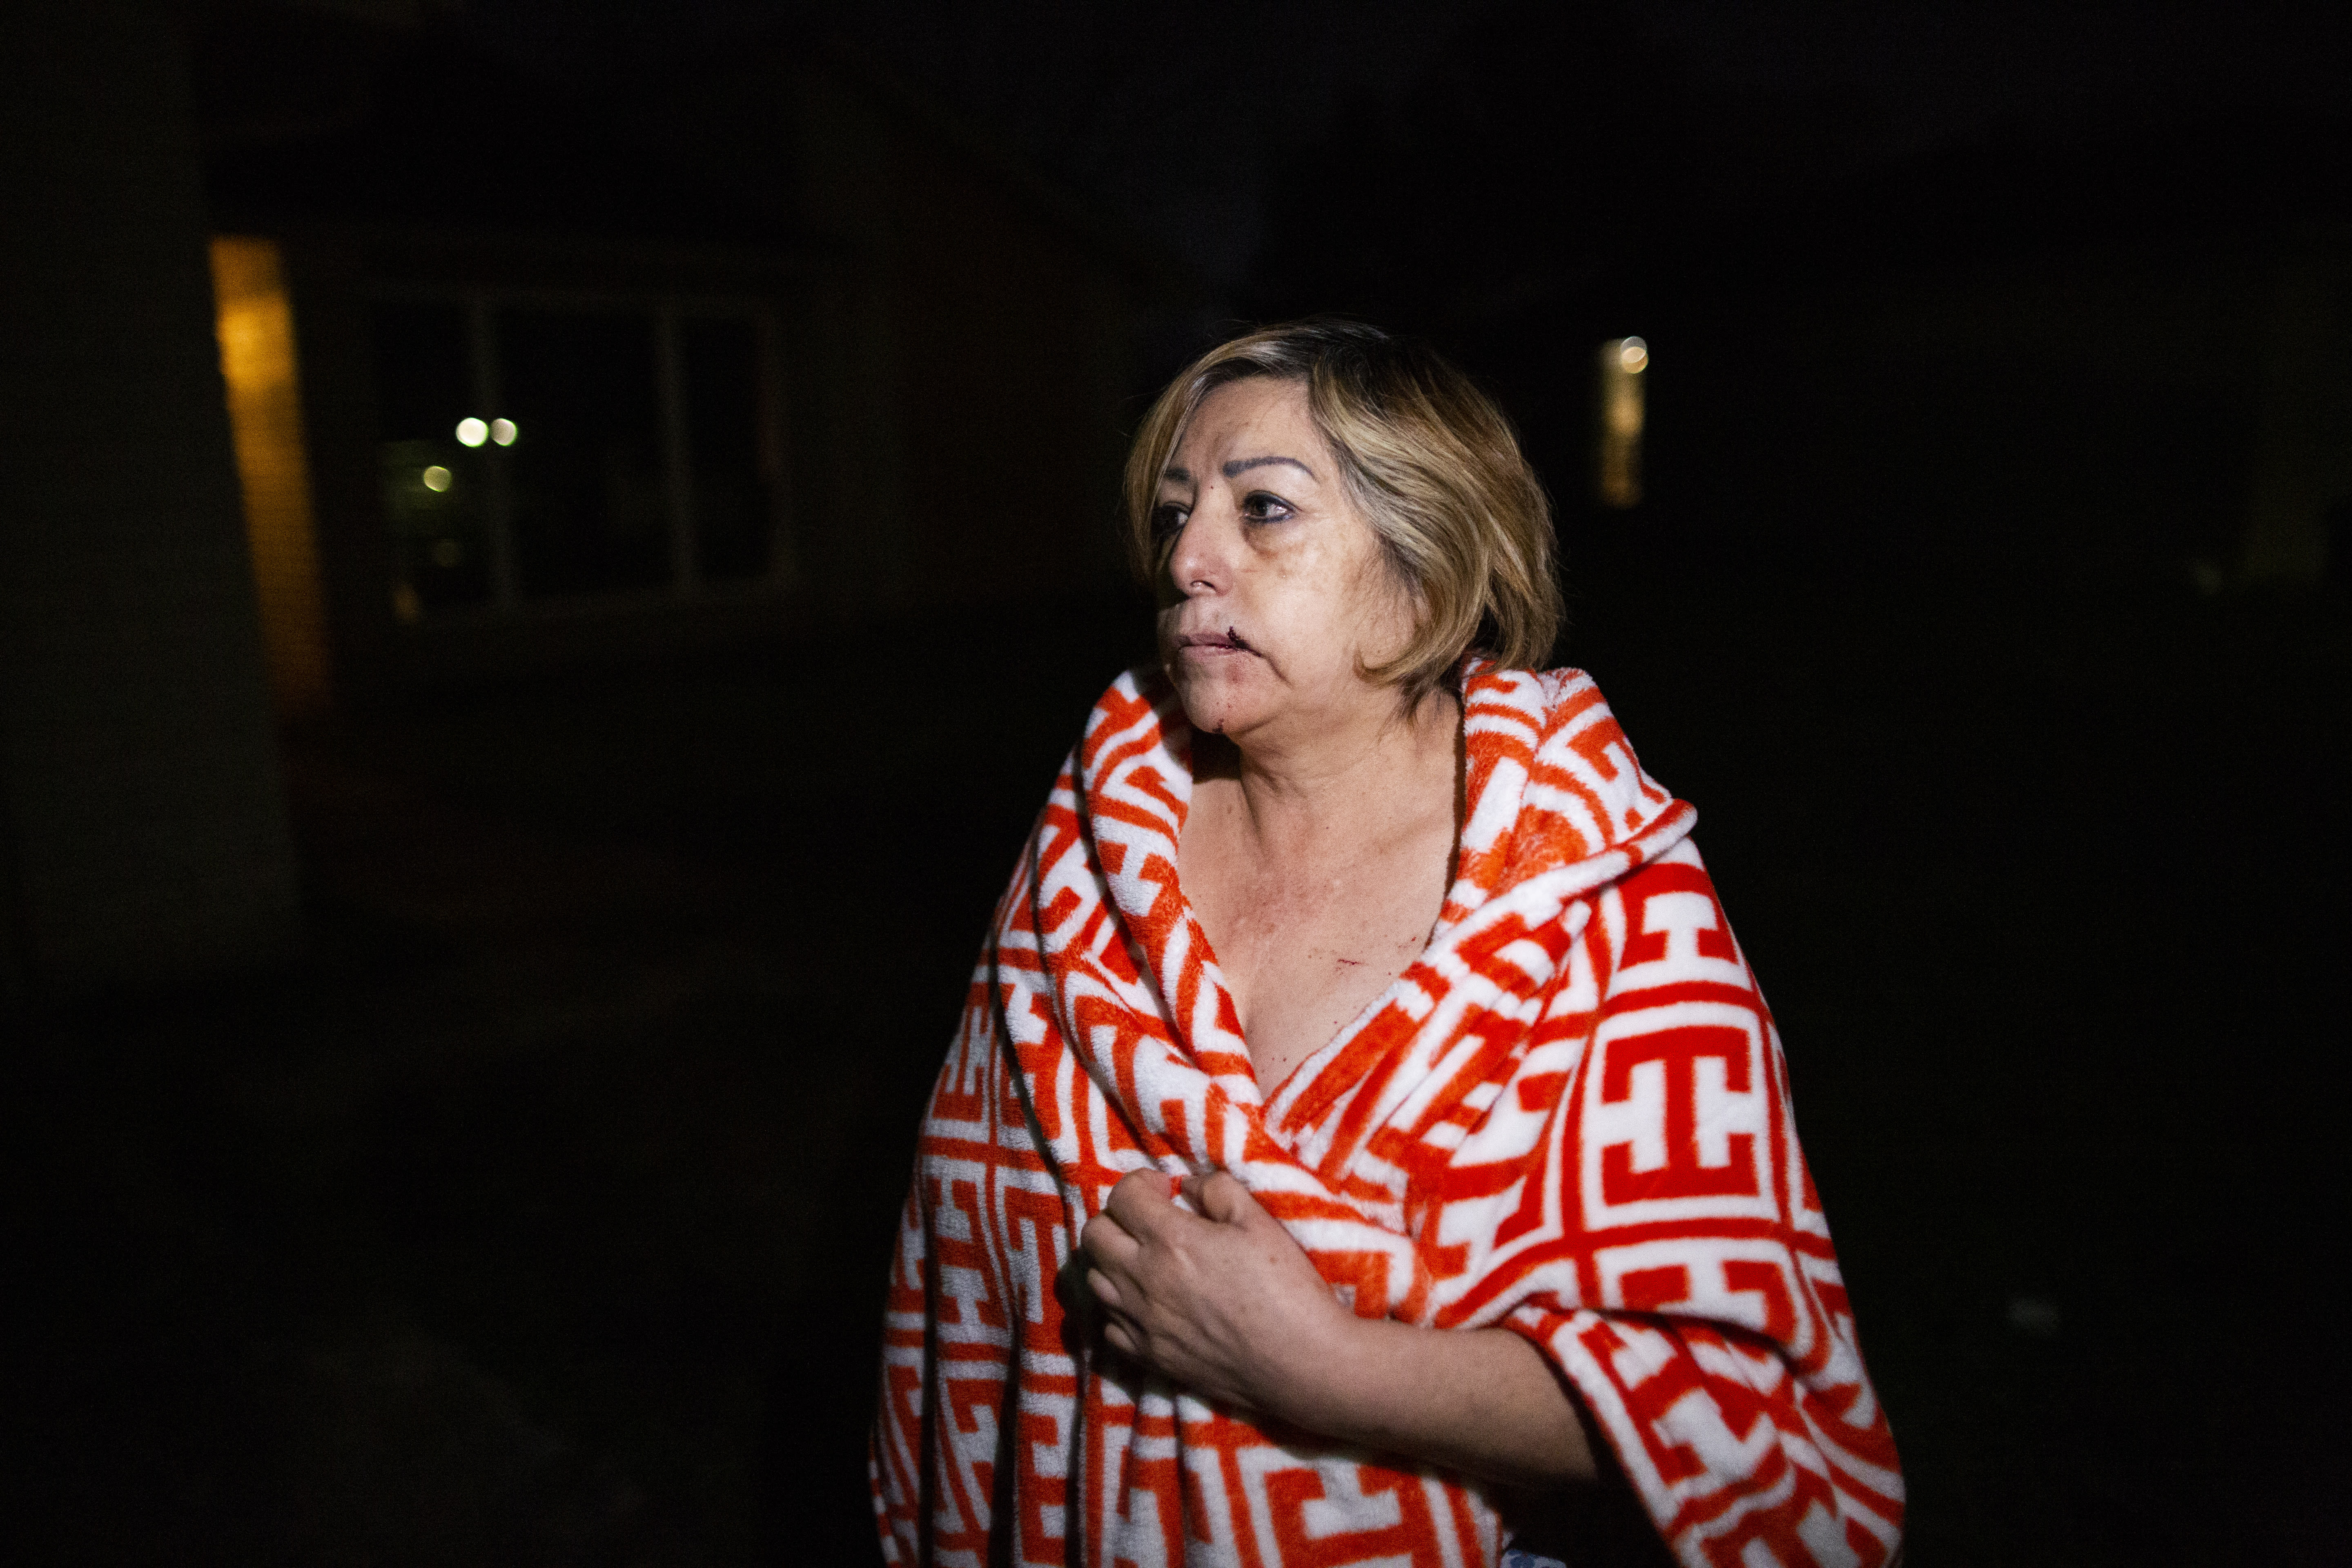 Maria Olivo, a west Houston resident, is shown after a massive explosion blew the window in the room she was sleeping in on Friday, Jan. 24, 2020, in Houston. A massive explosion early Friday leveled a warehouse in Houston and damaged nearby buildings and homes, rousing frightened people from their sleep miles away. (Marie D. De Jesús/Houston Chronicle via AP)